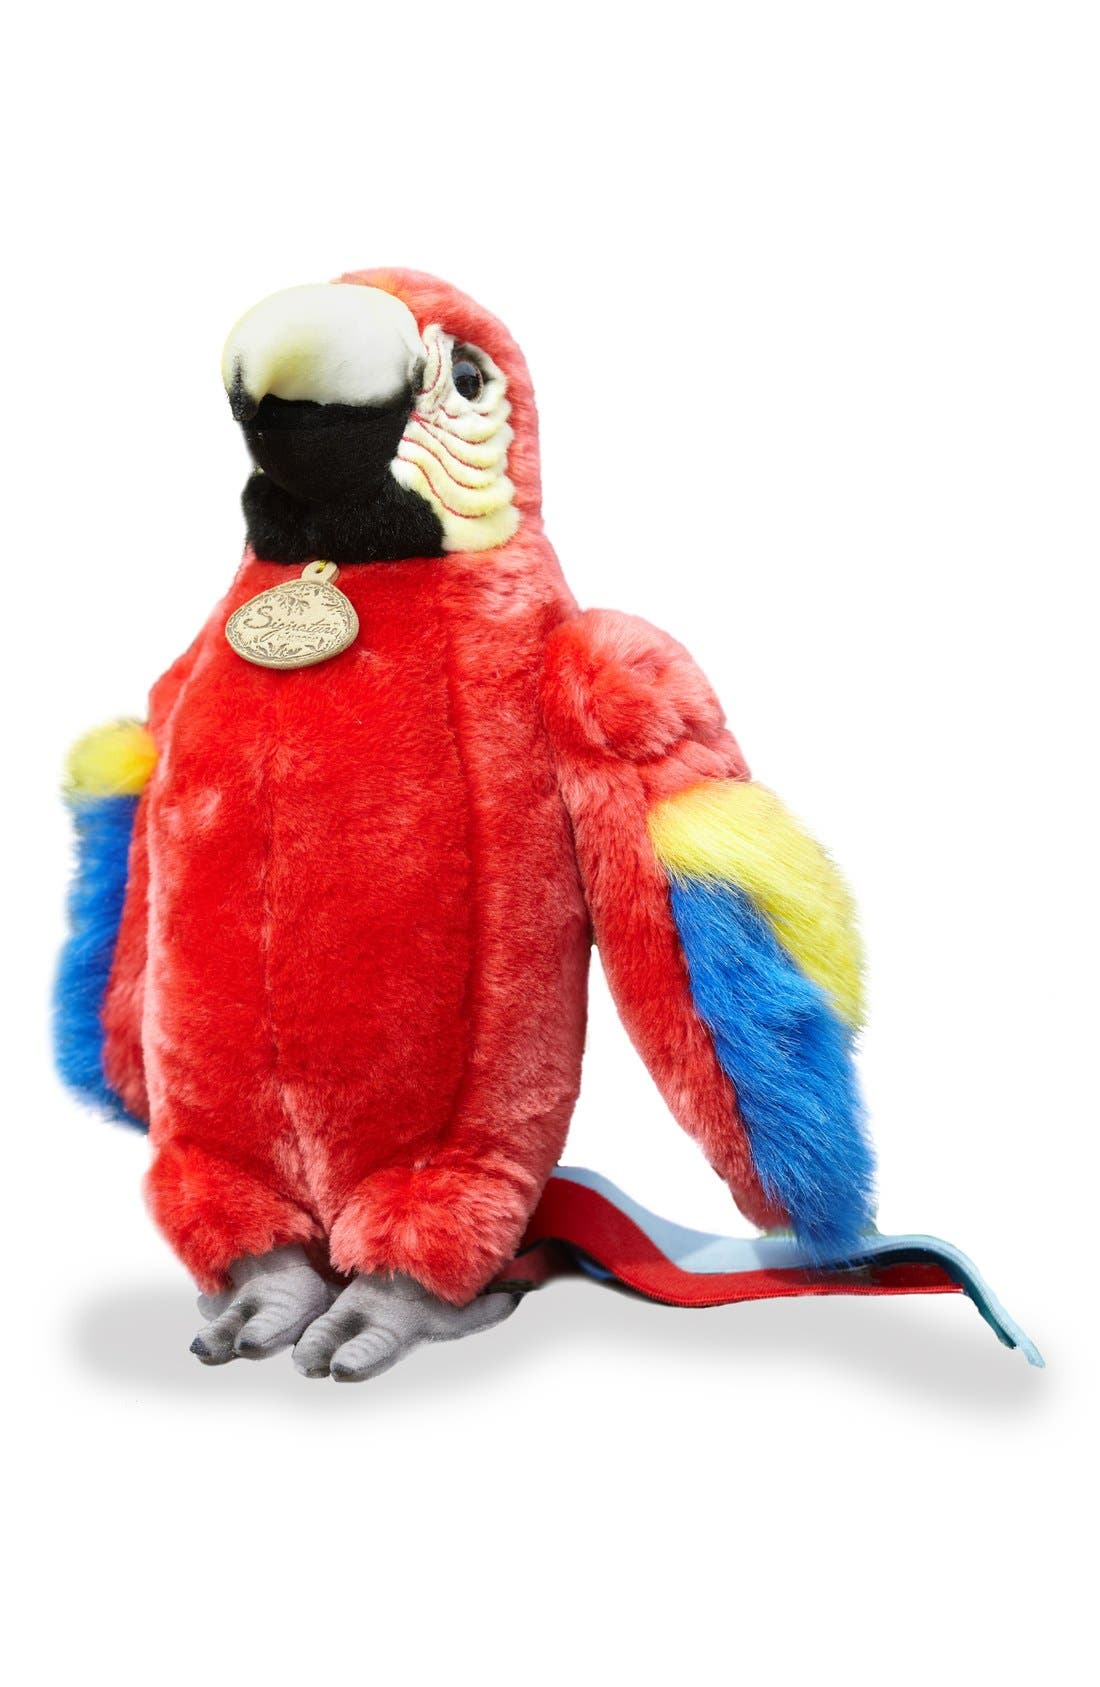 'Scarlet Macaw' Stuffed Animal,                             Main thumbnail 1, color,                             RED